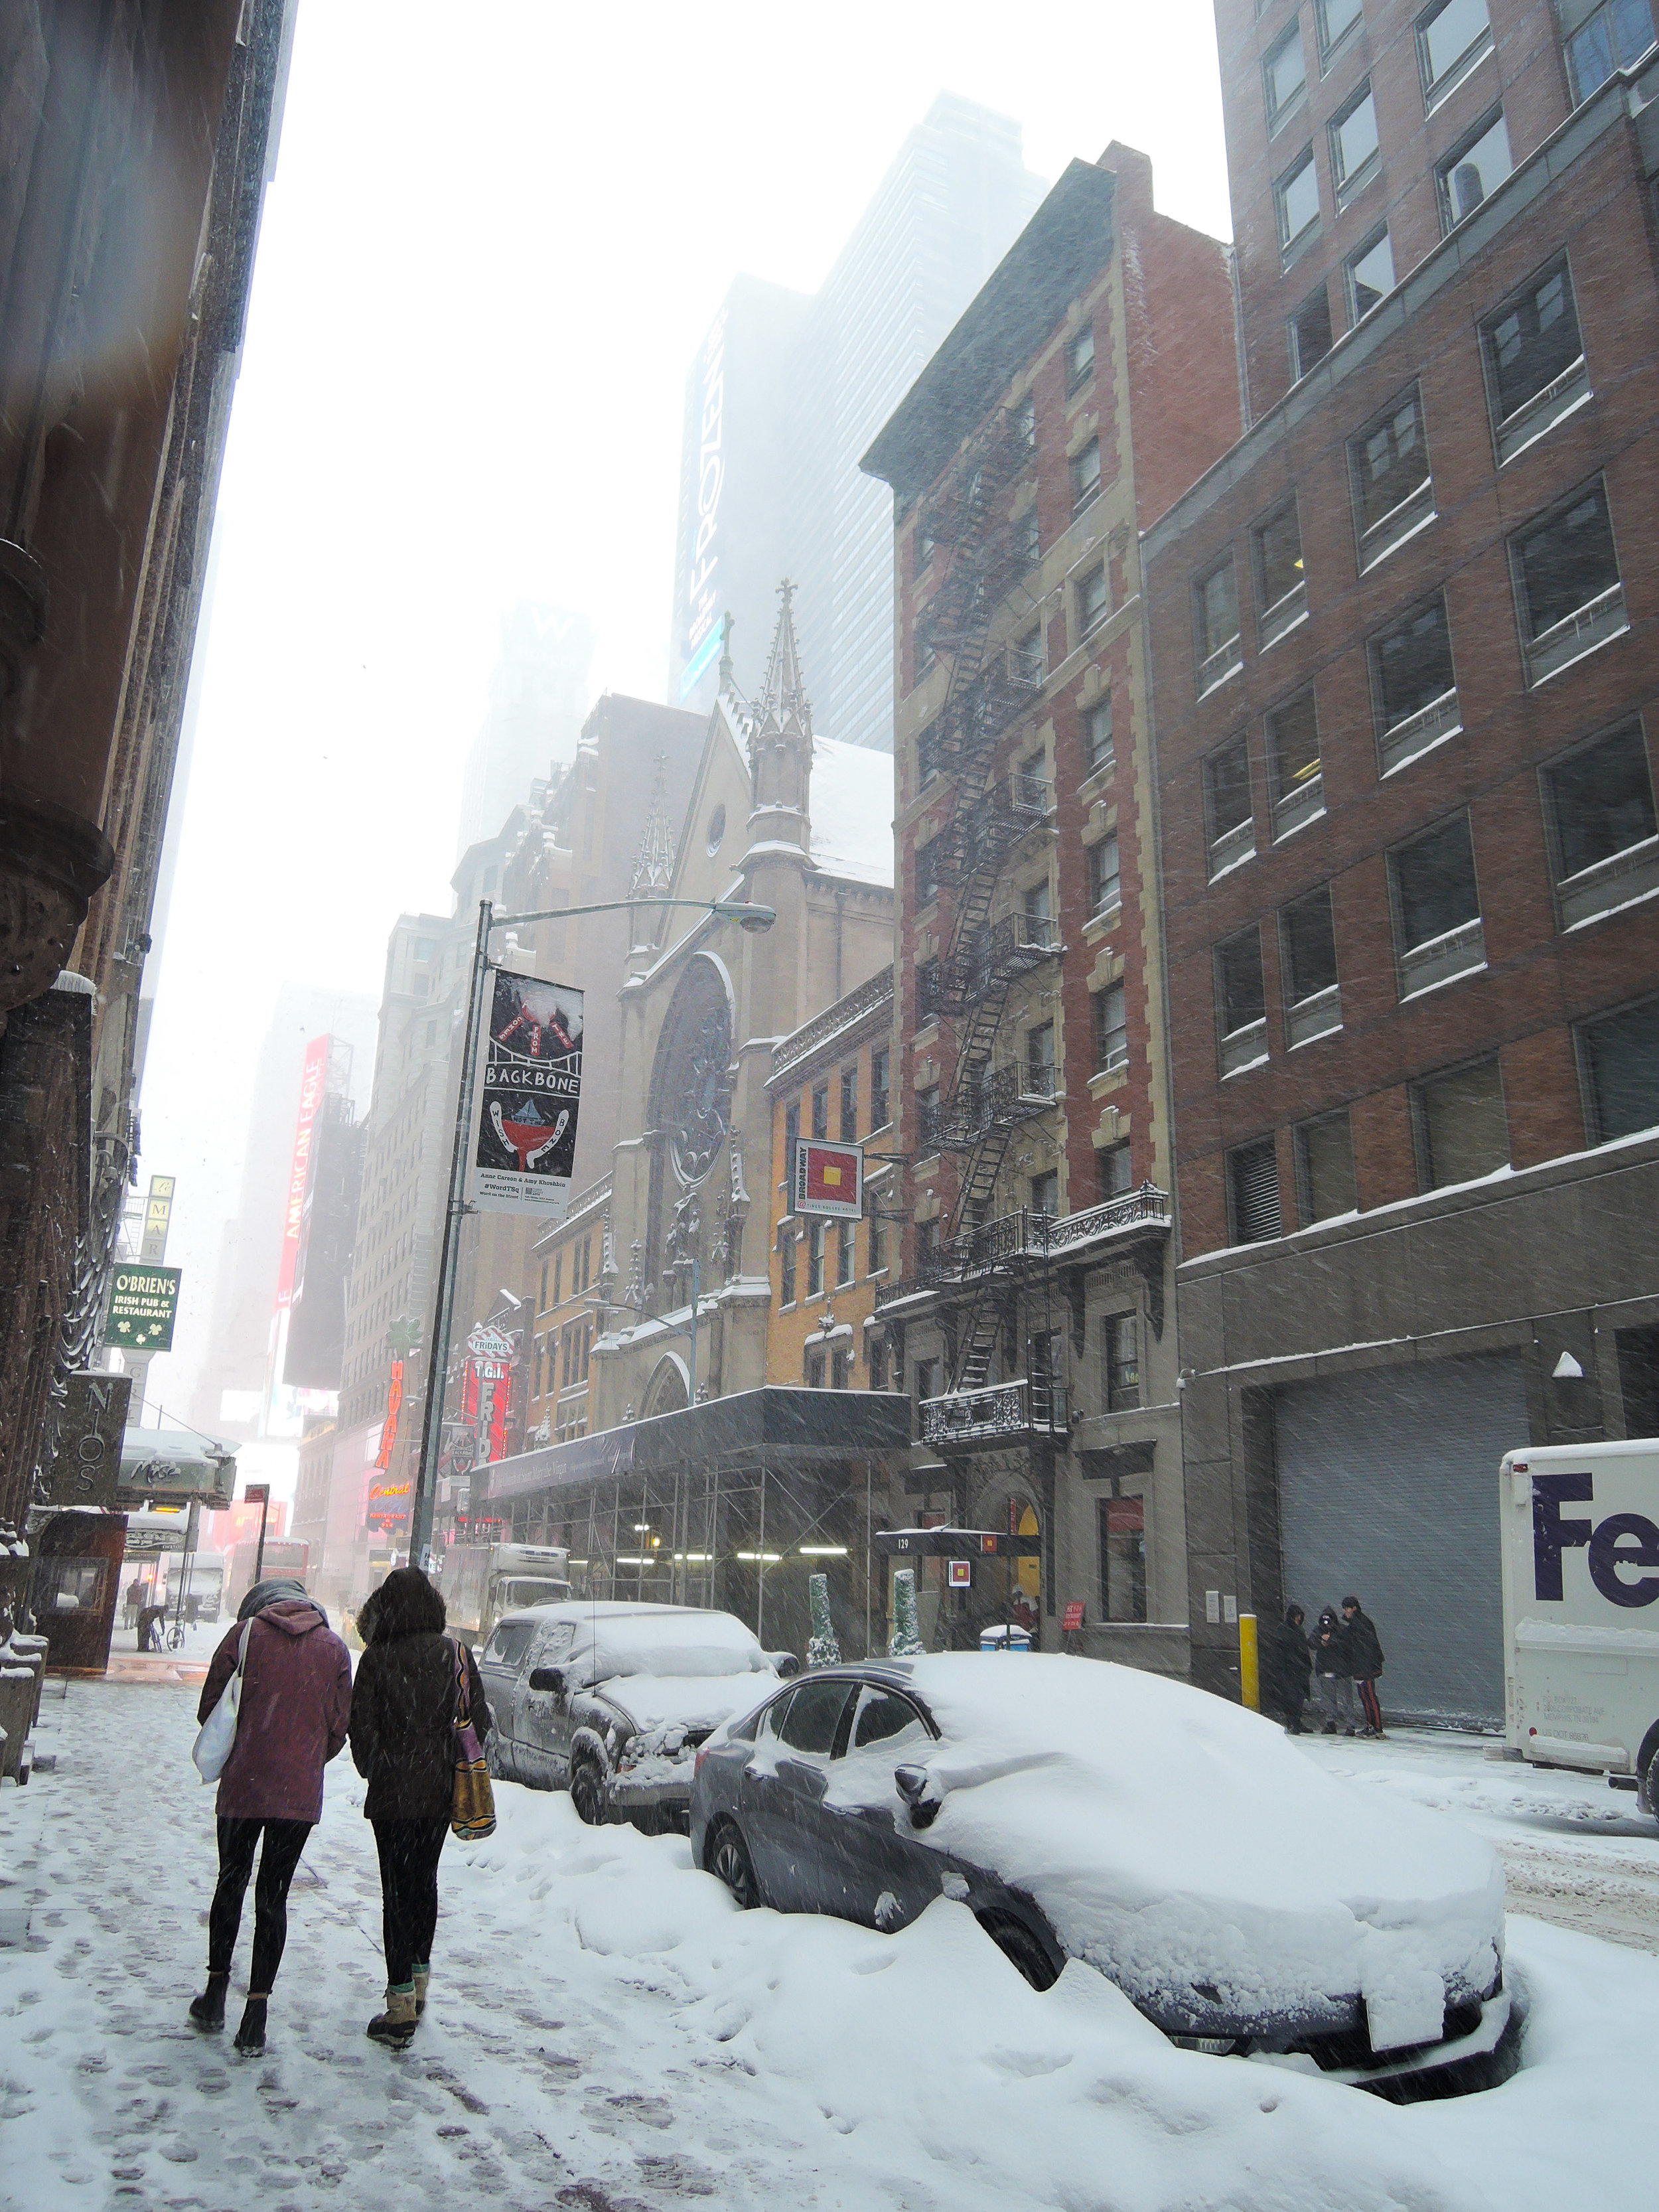 West 46th Street, January 4, 2018     Photo by Sr. Monica Clare, C.S.J.B.